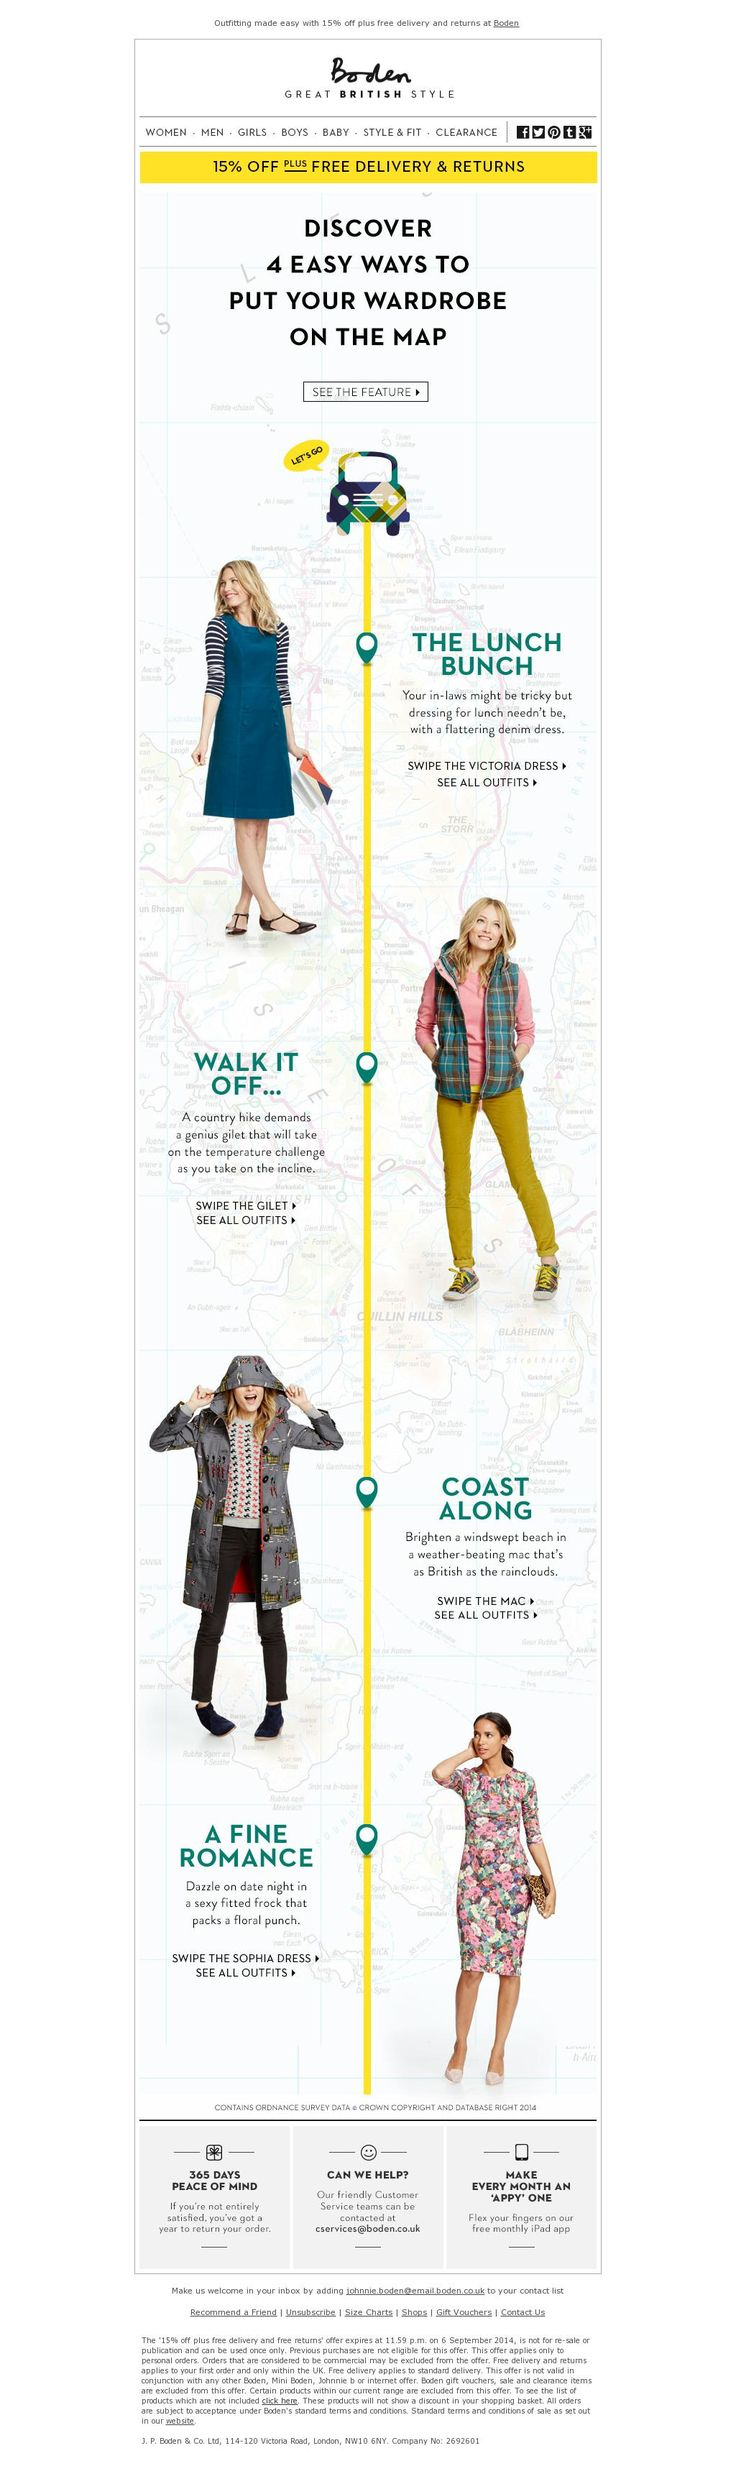 Discover 4 Easy Ways to Put Your Wardrobe on the Map